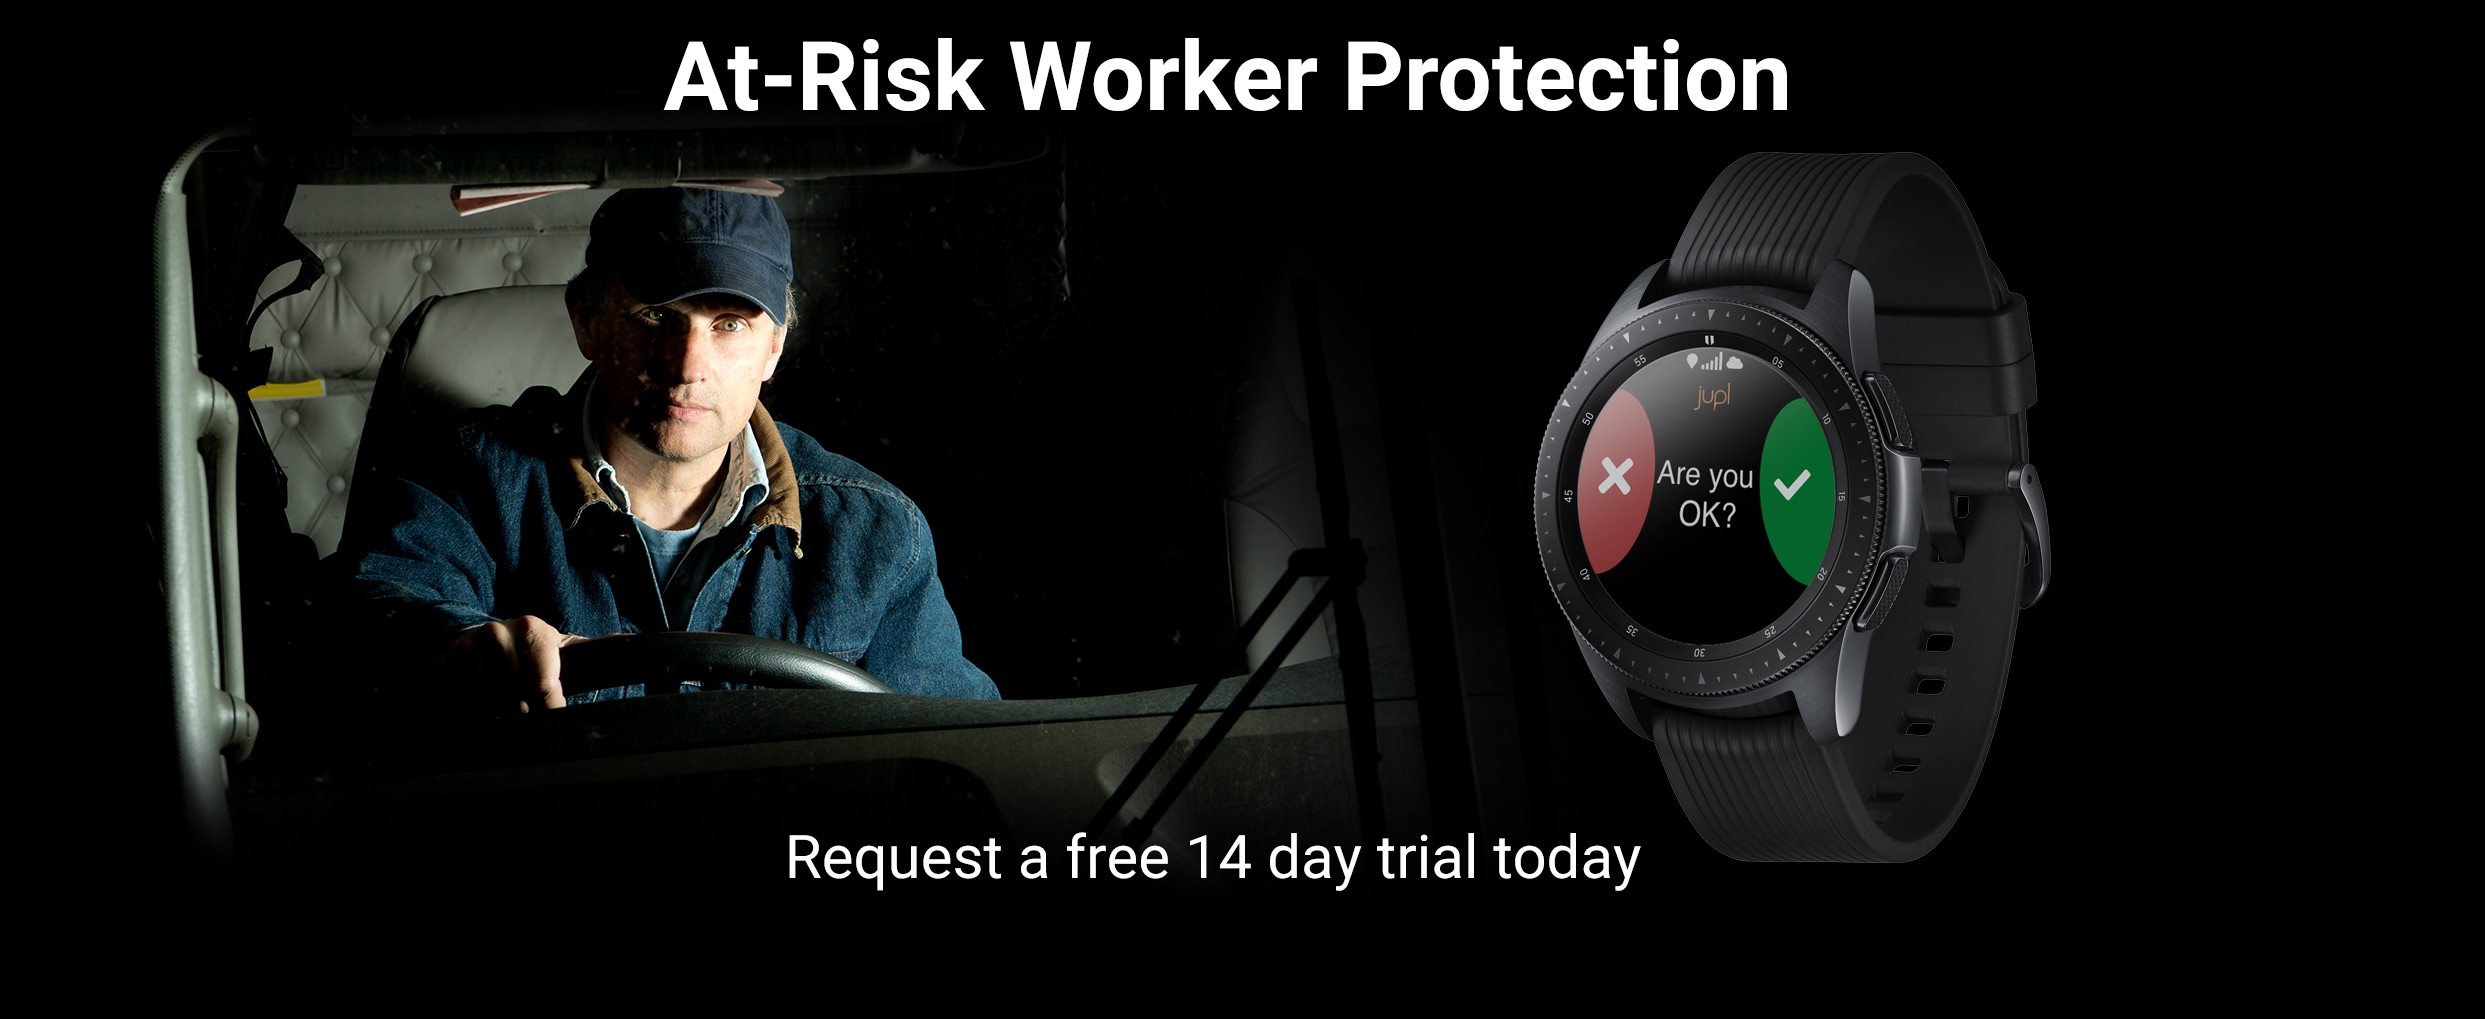 At-Risk Worker Protection 2.jpg